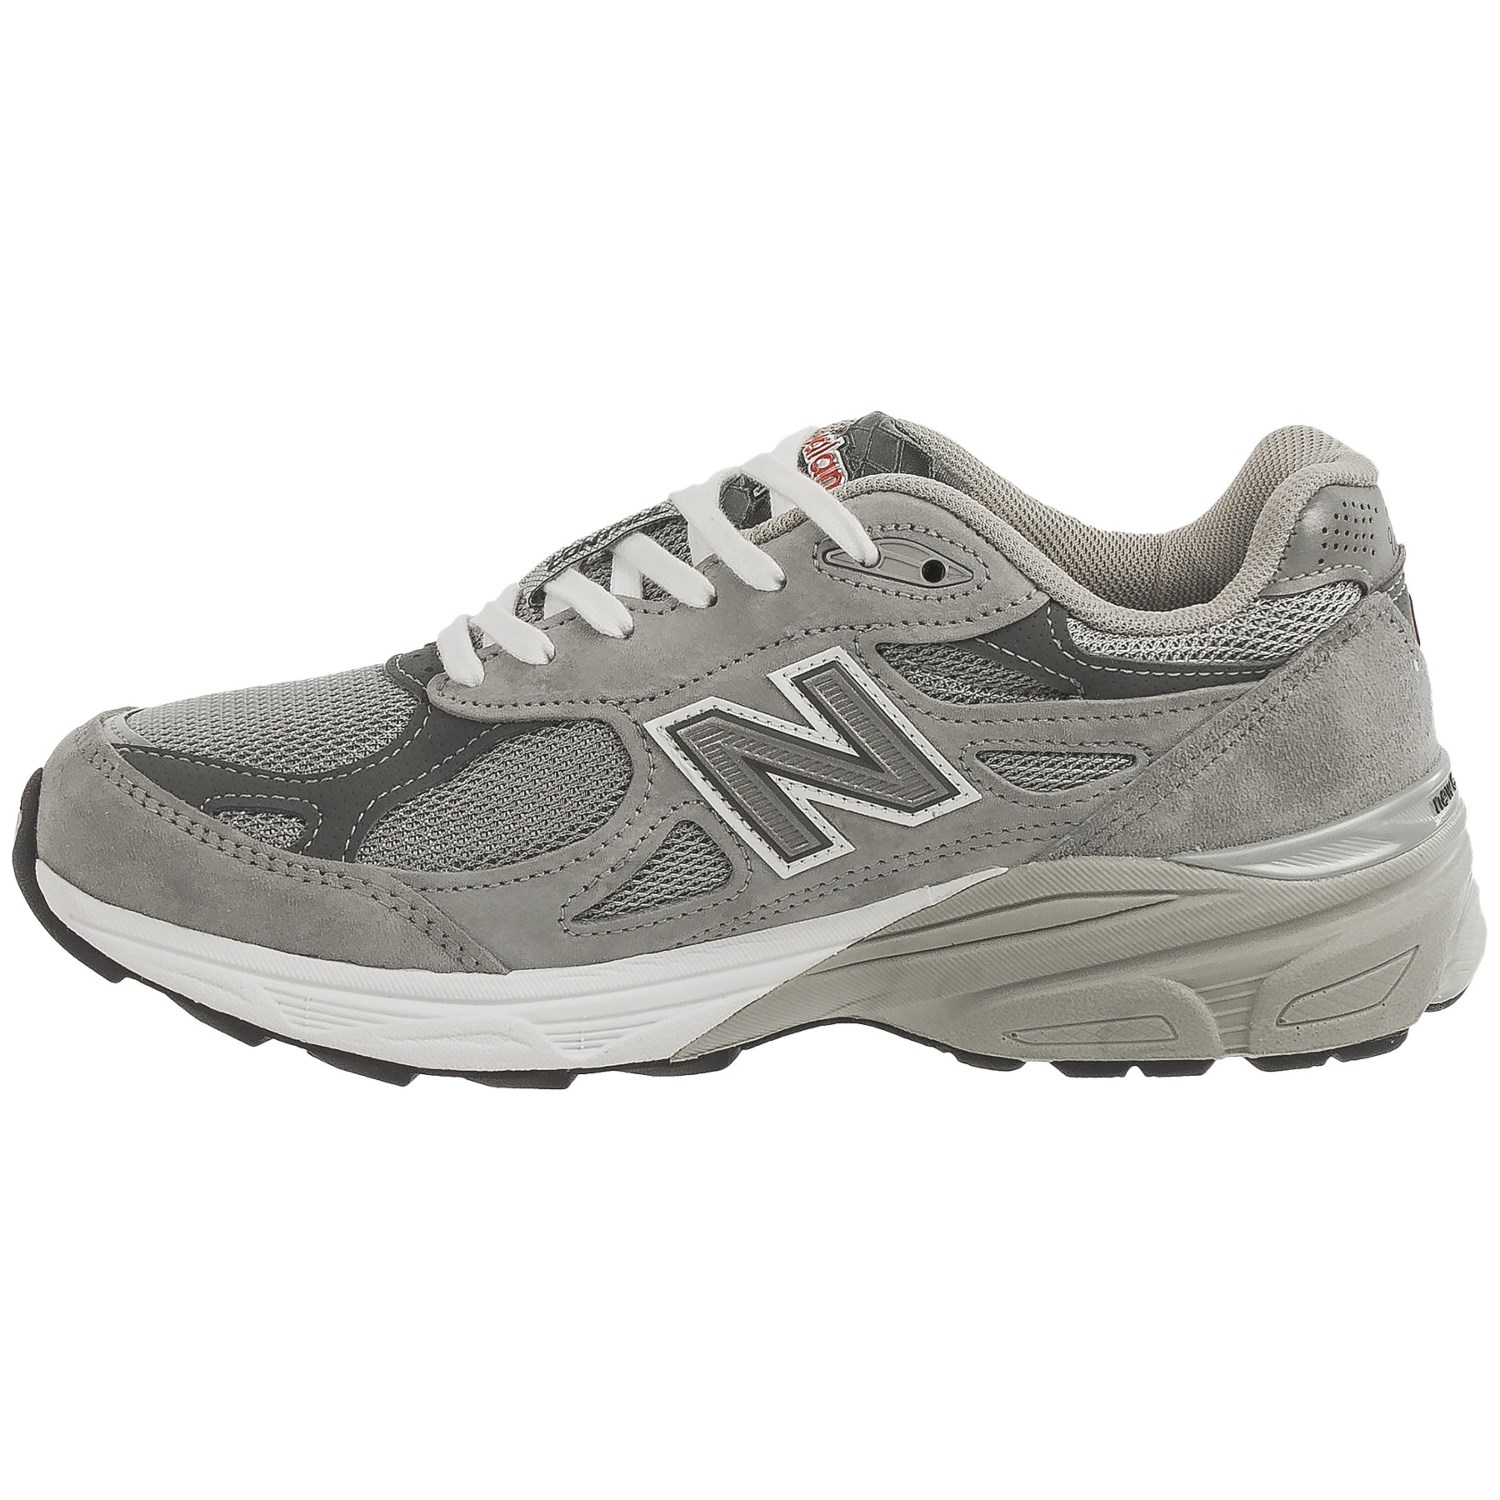 ladies new balance walking shoes